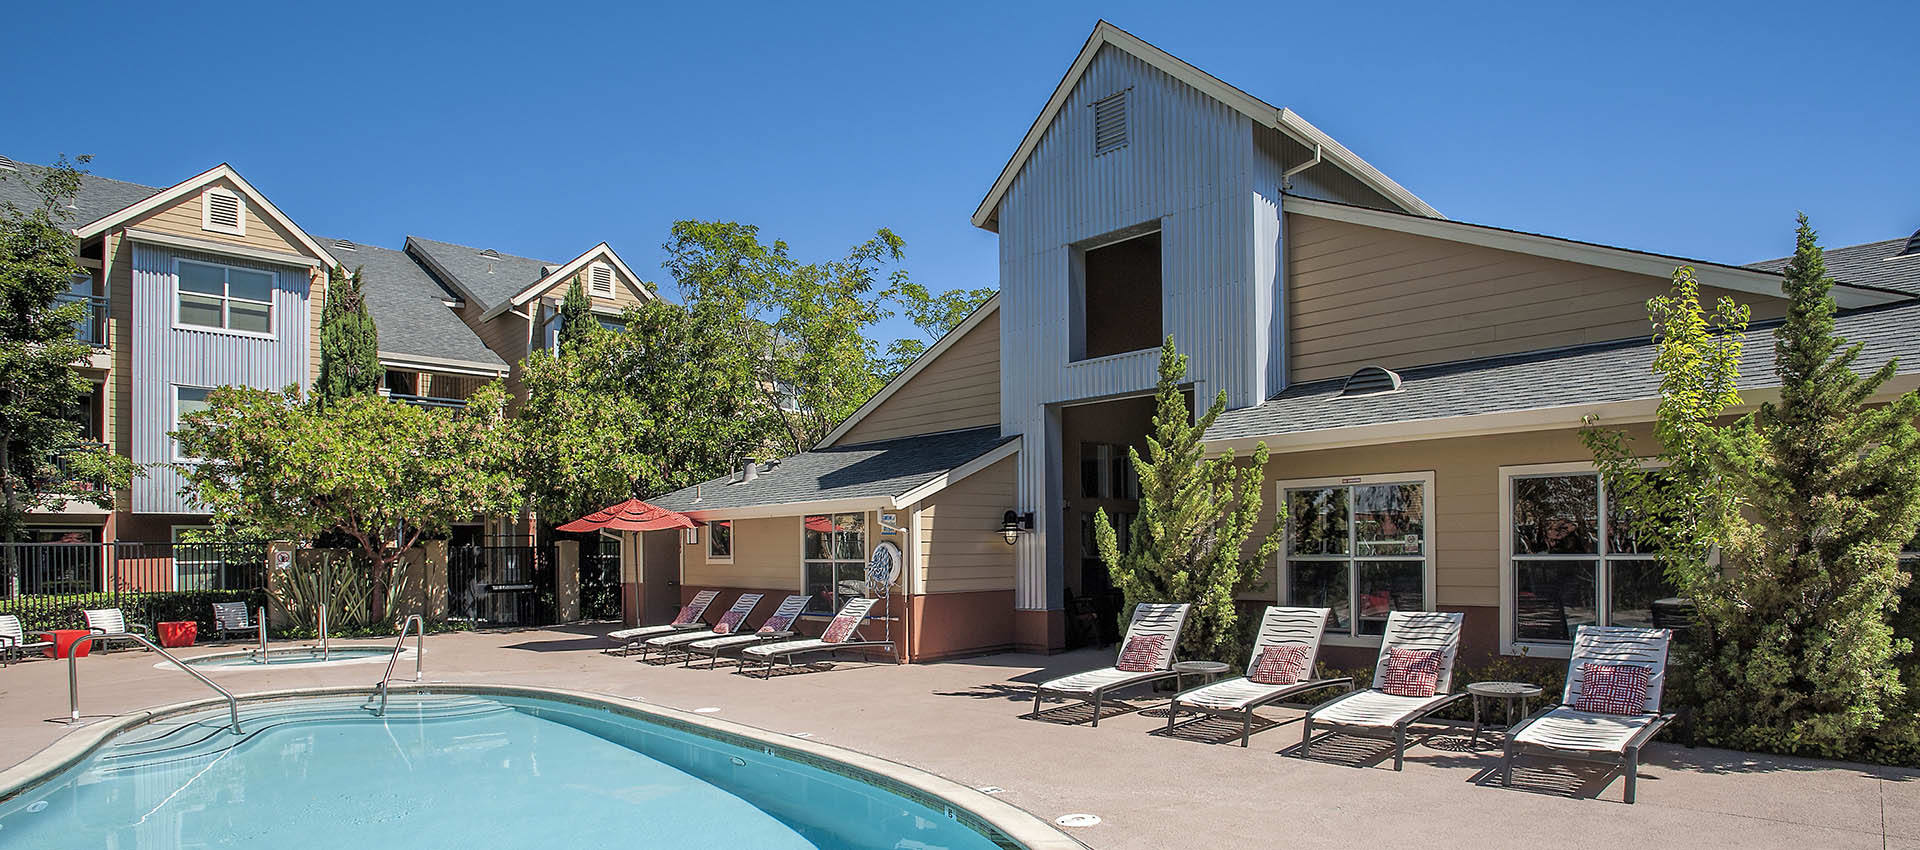 Catch Some Sun Around The Pool at Azure Apartment Homes in Petaluma, CA